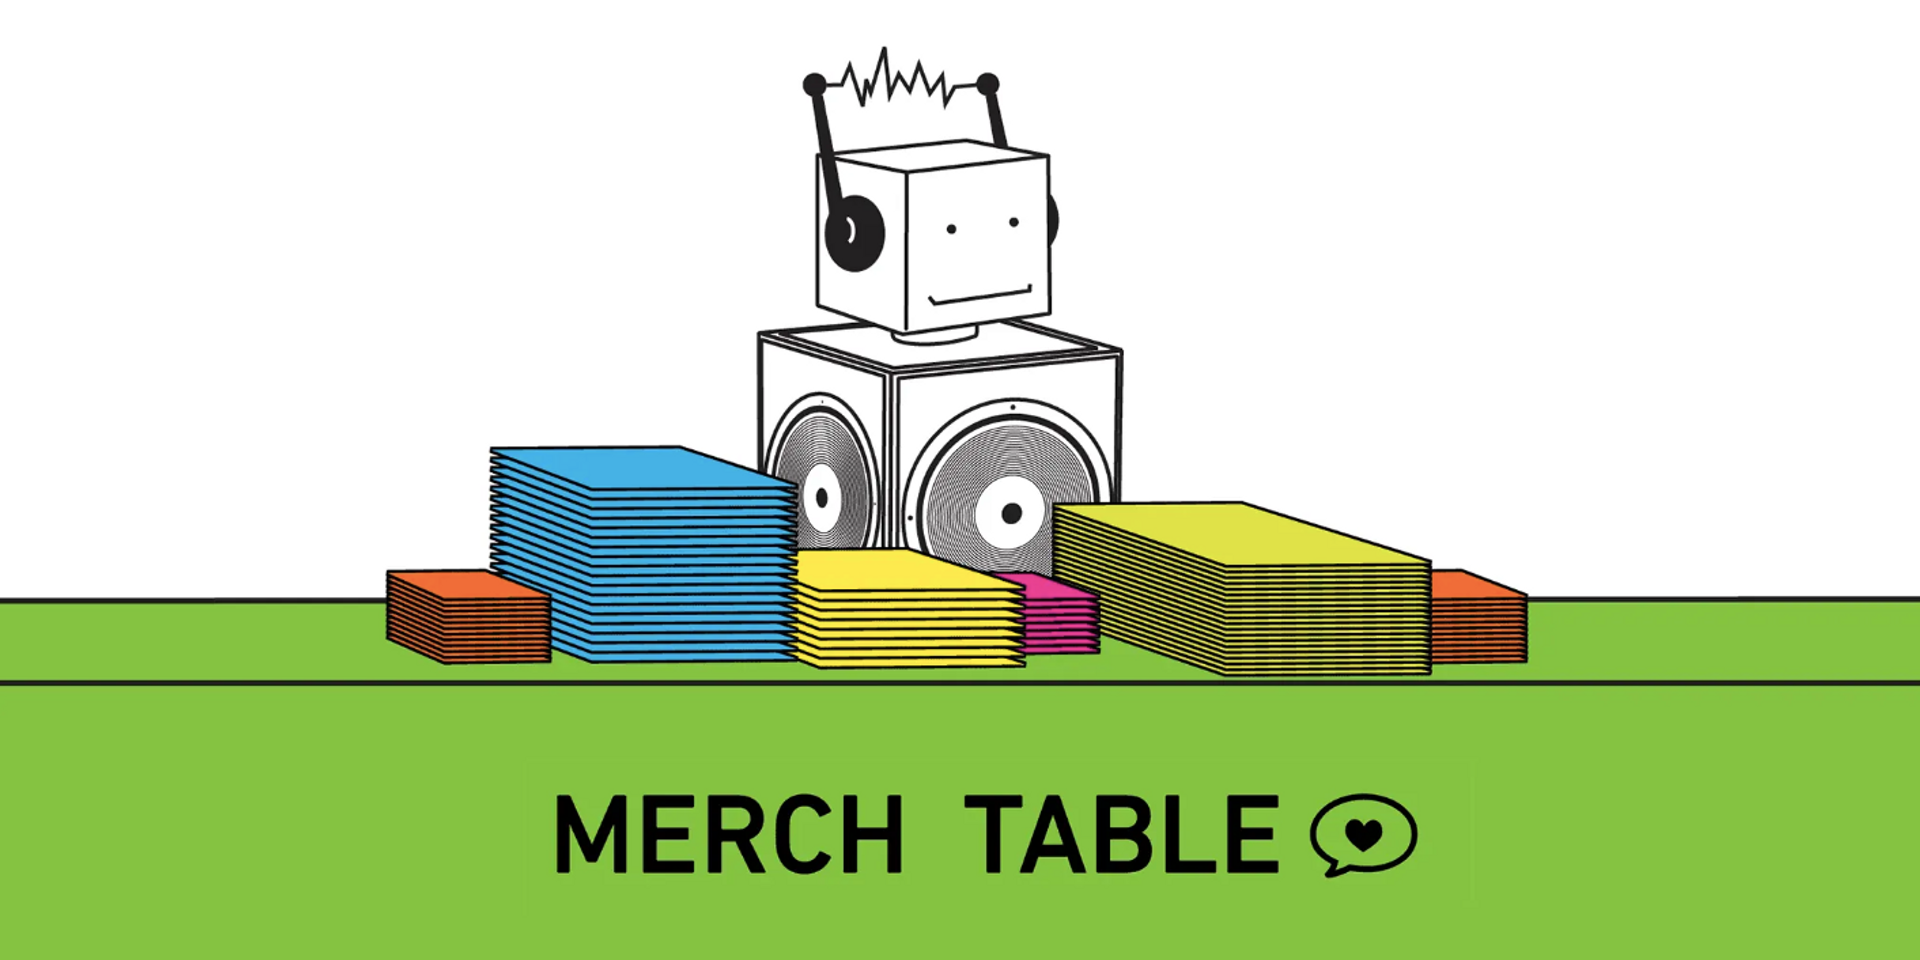 Support your favourite artists with Hype Machine's Merch Table, which generates Bandcamp links from your Spotify playlists